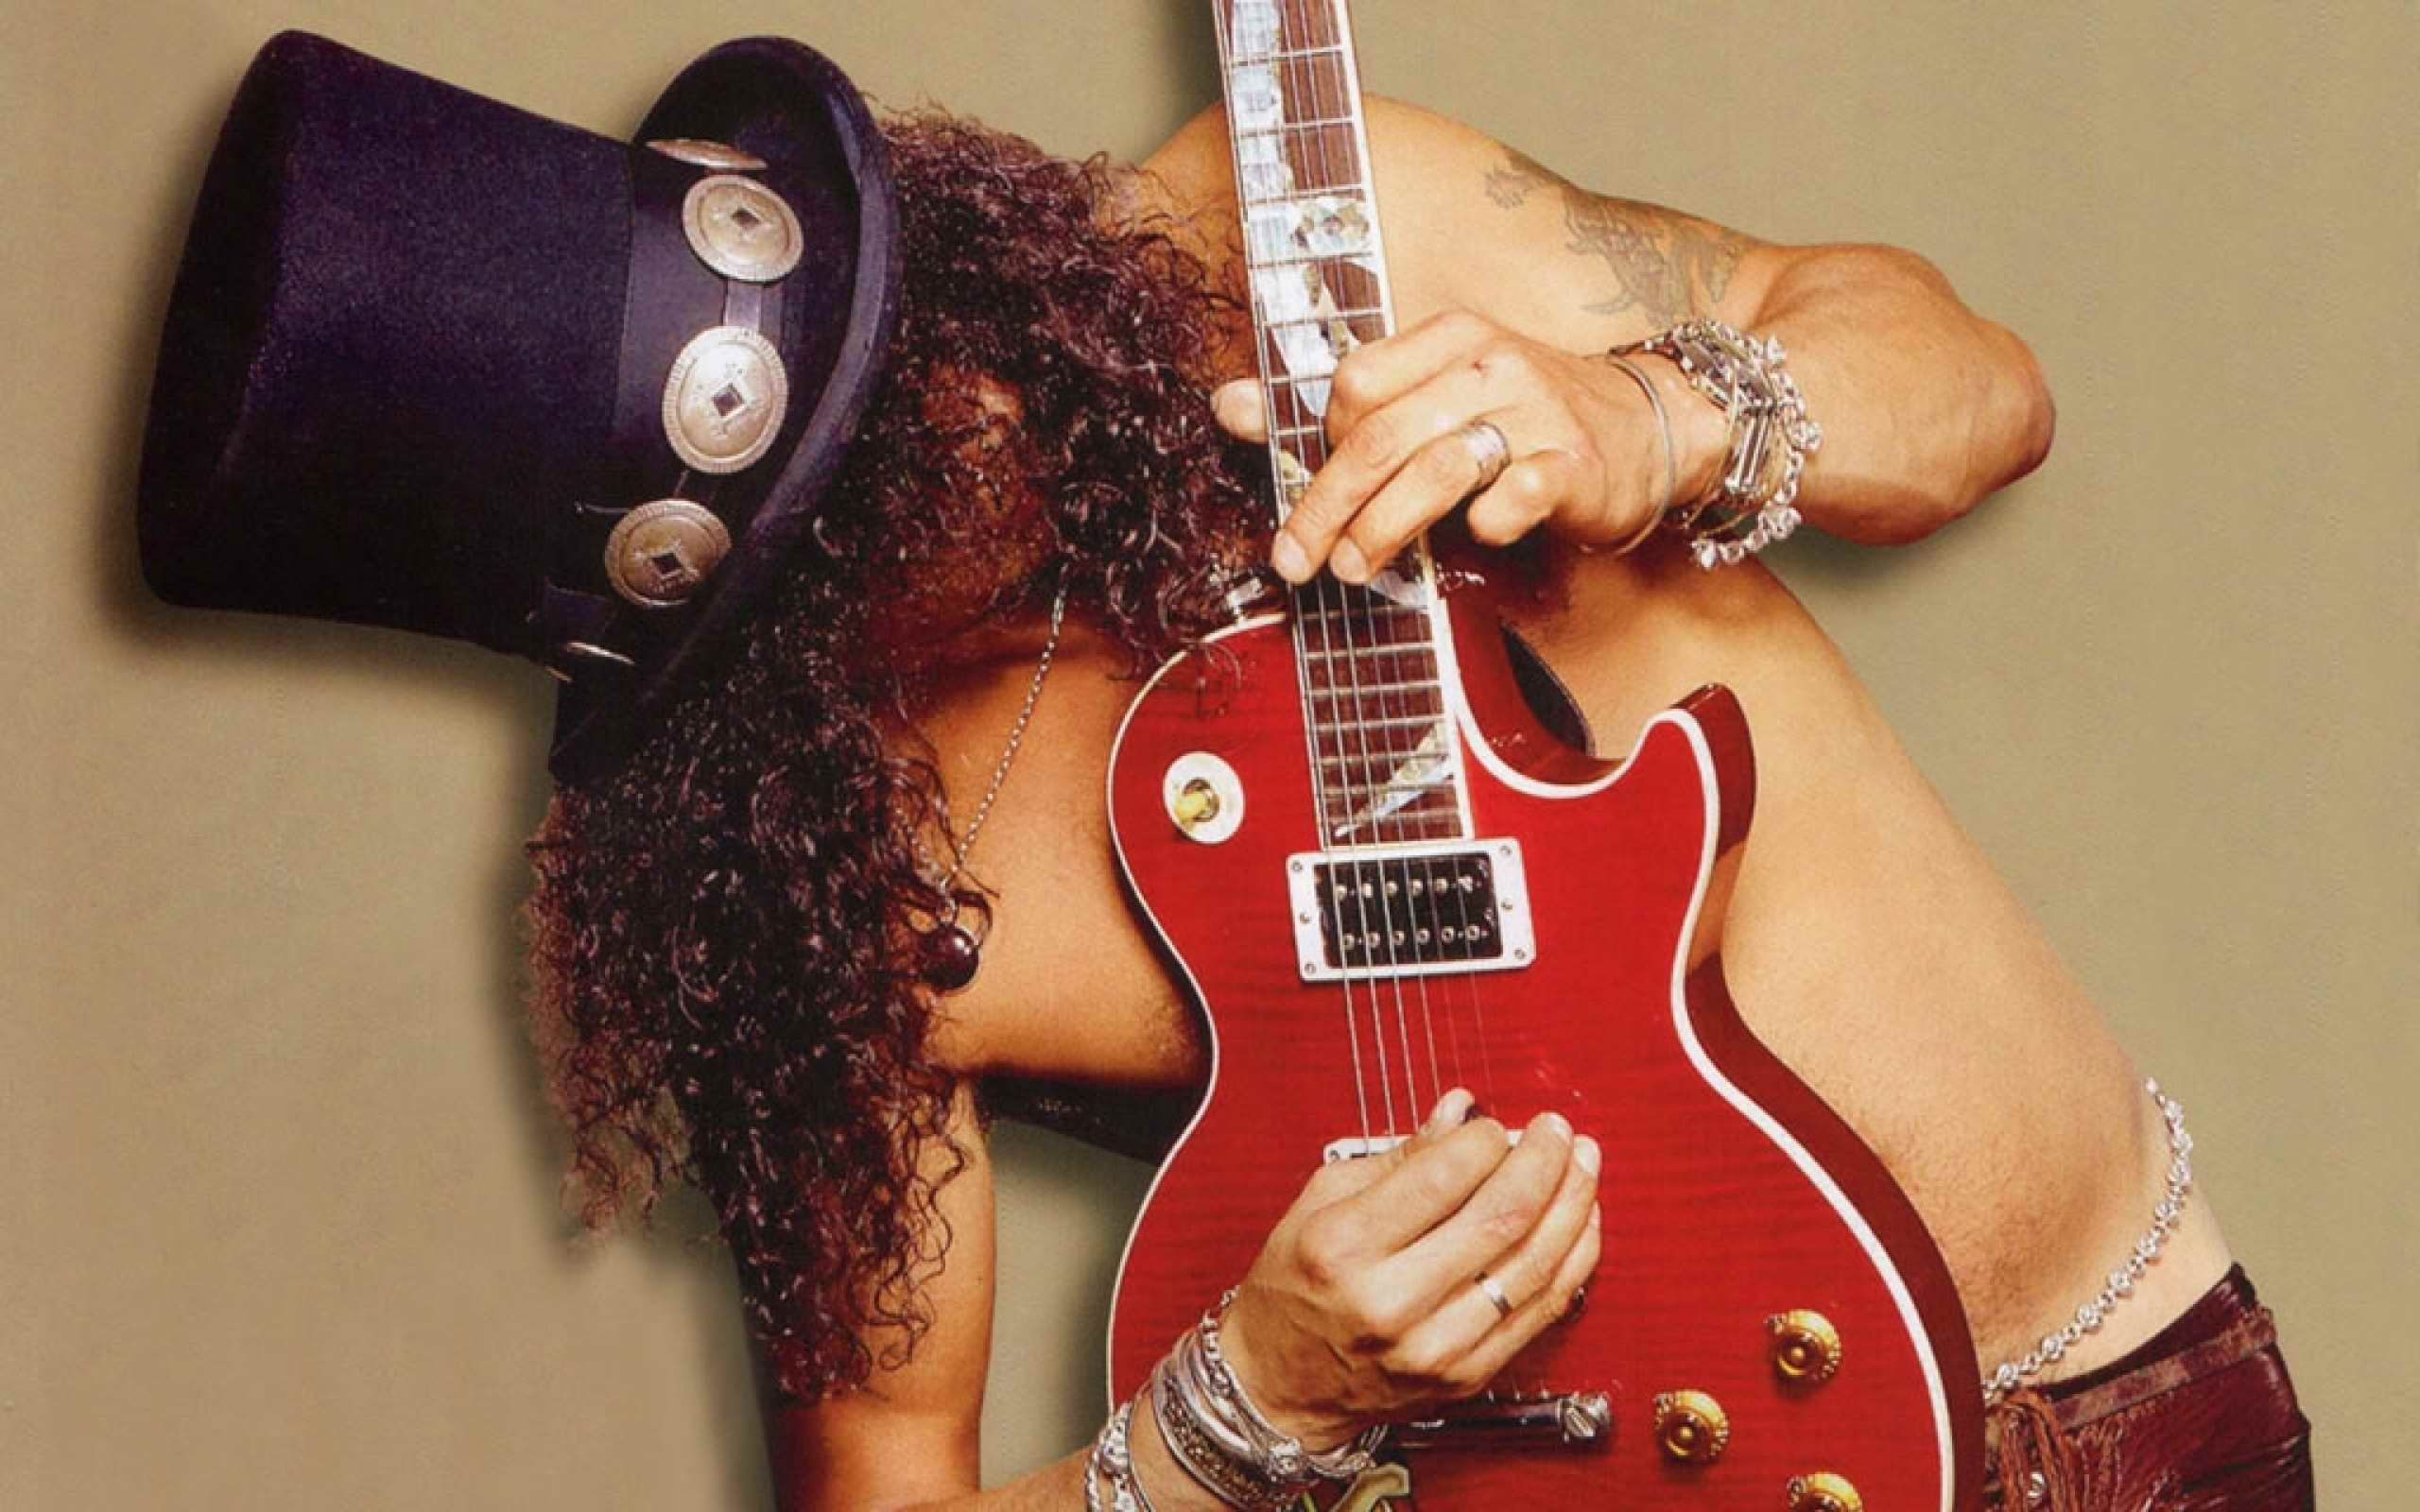 slash s snakepit hd wallpapers slash saul hudson pinterest